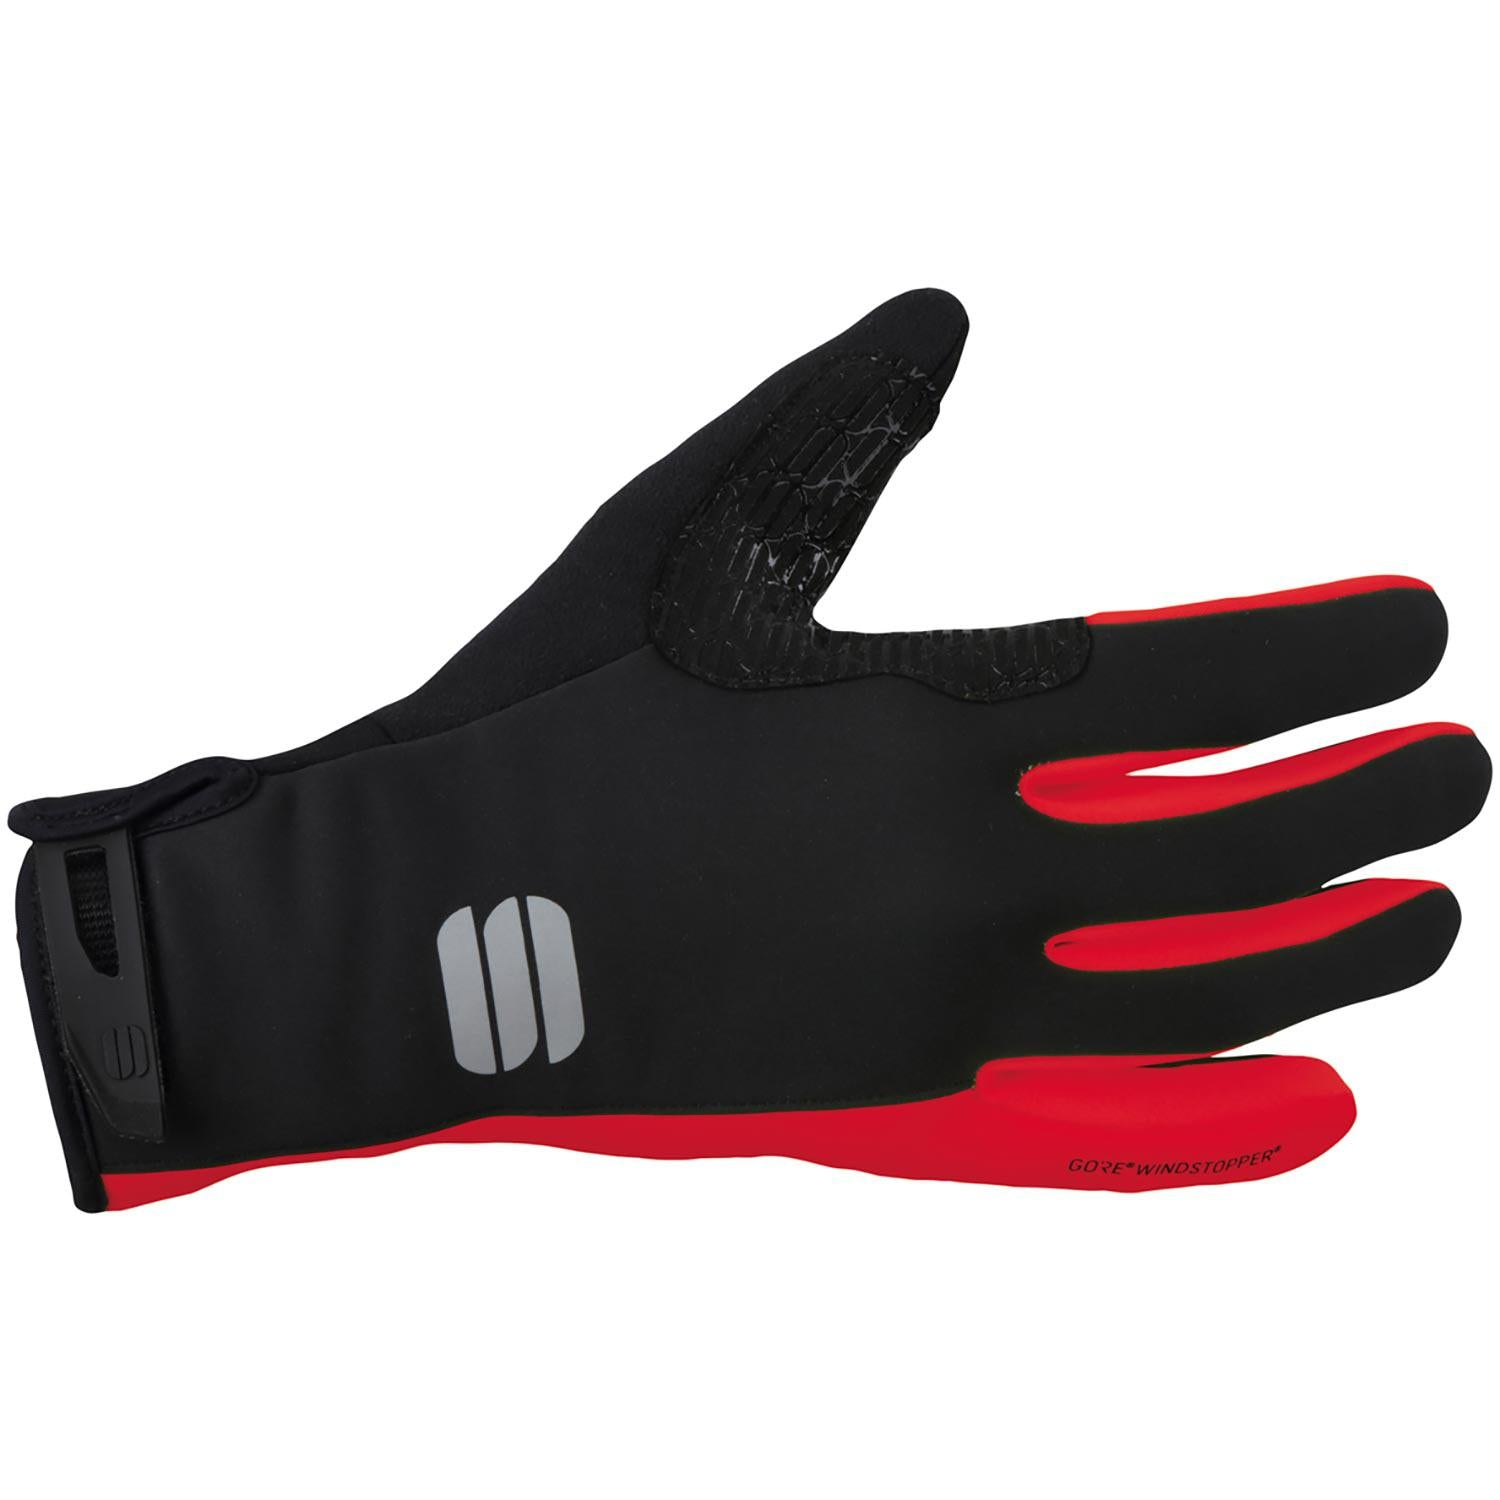 Sportful-Sportful WS Essential 2 Gloves-Black/Red-XS-SF019685671-saddleback-elite-performance-cycling